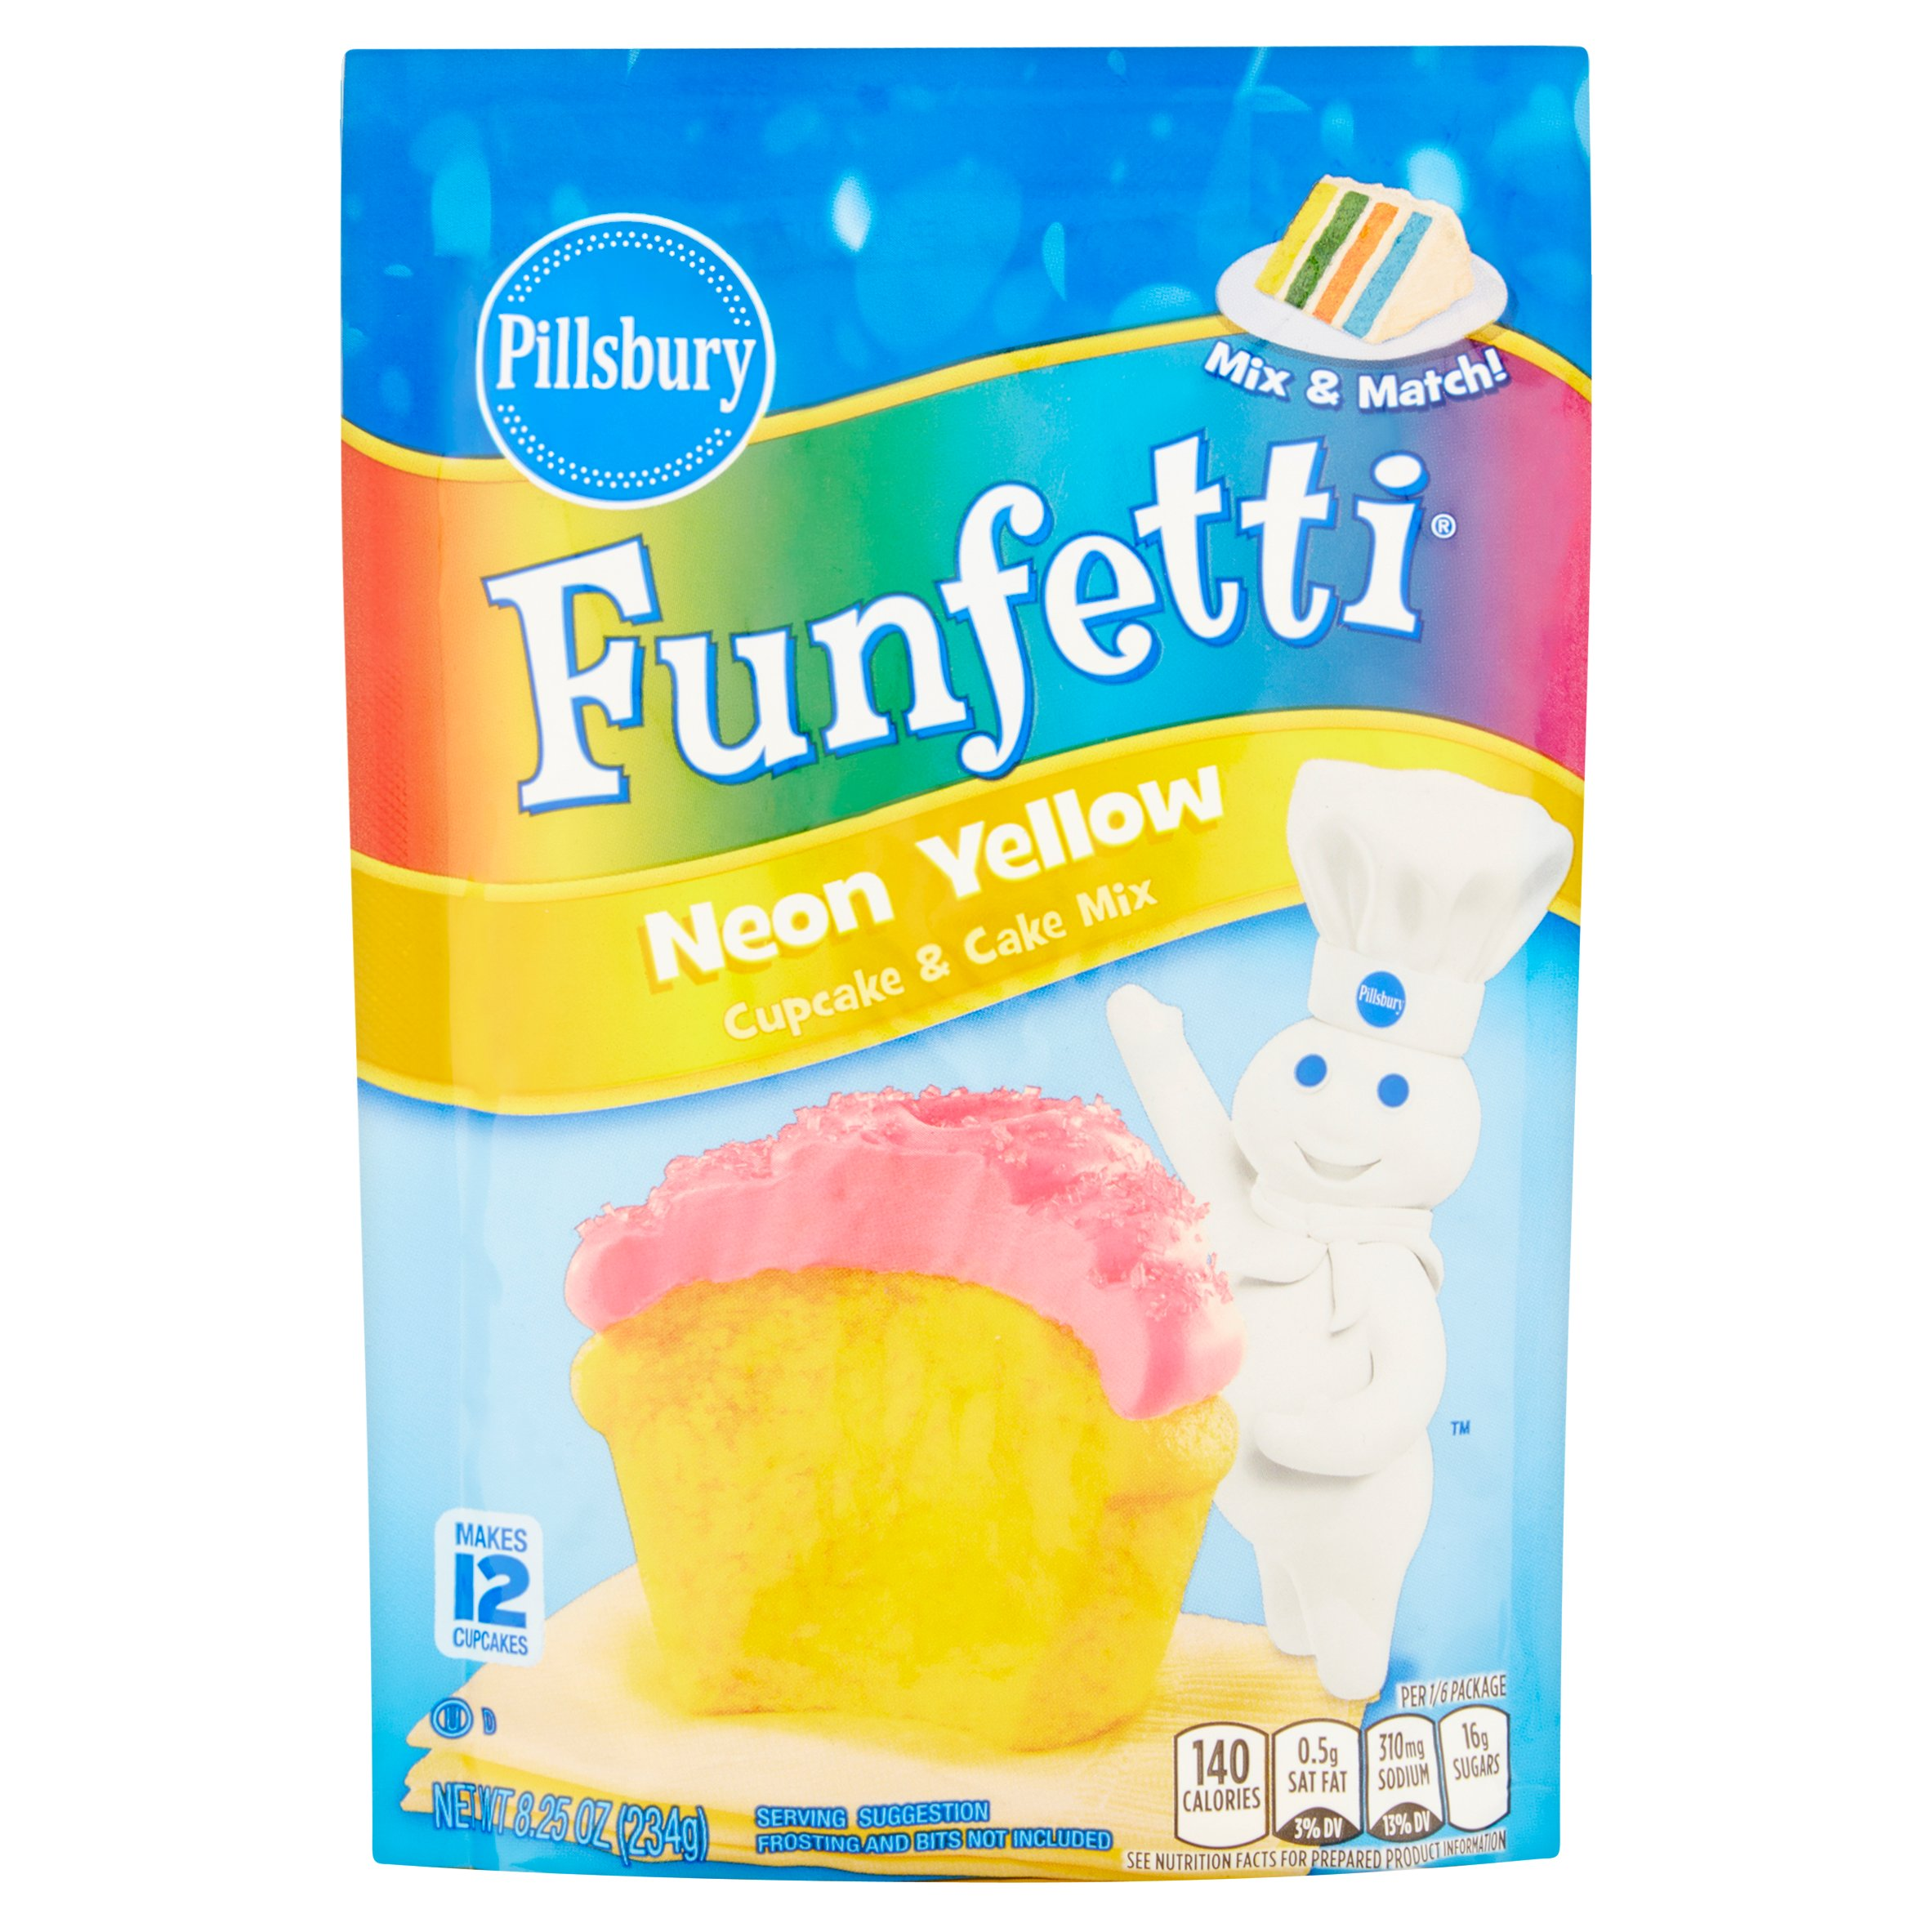 Pillsbury Funfetti Neon Yellow Cupcake & Cake Mix, 8.25 oz